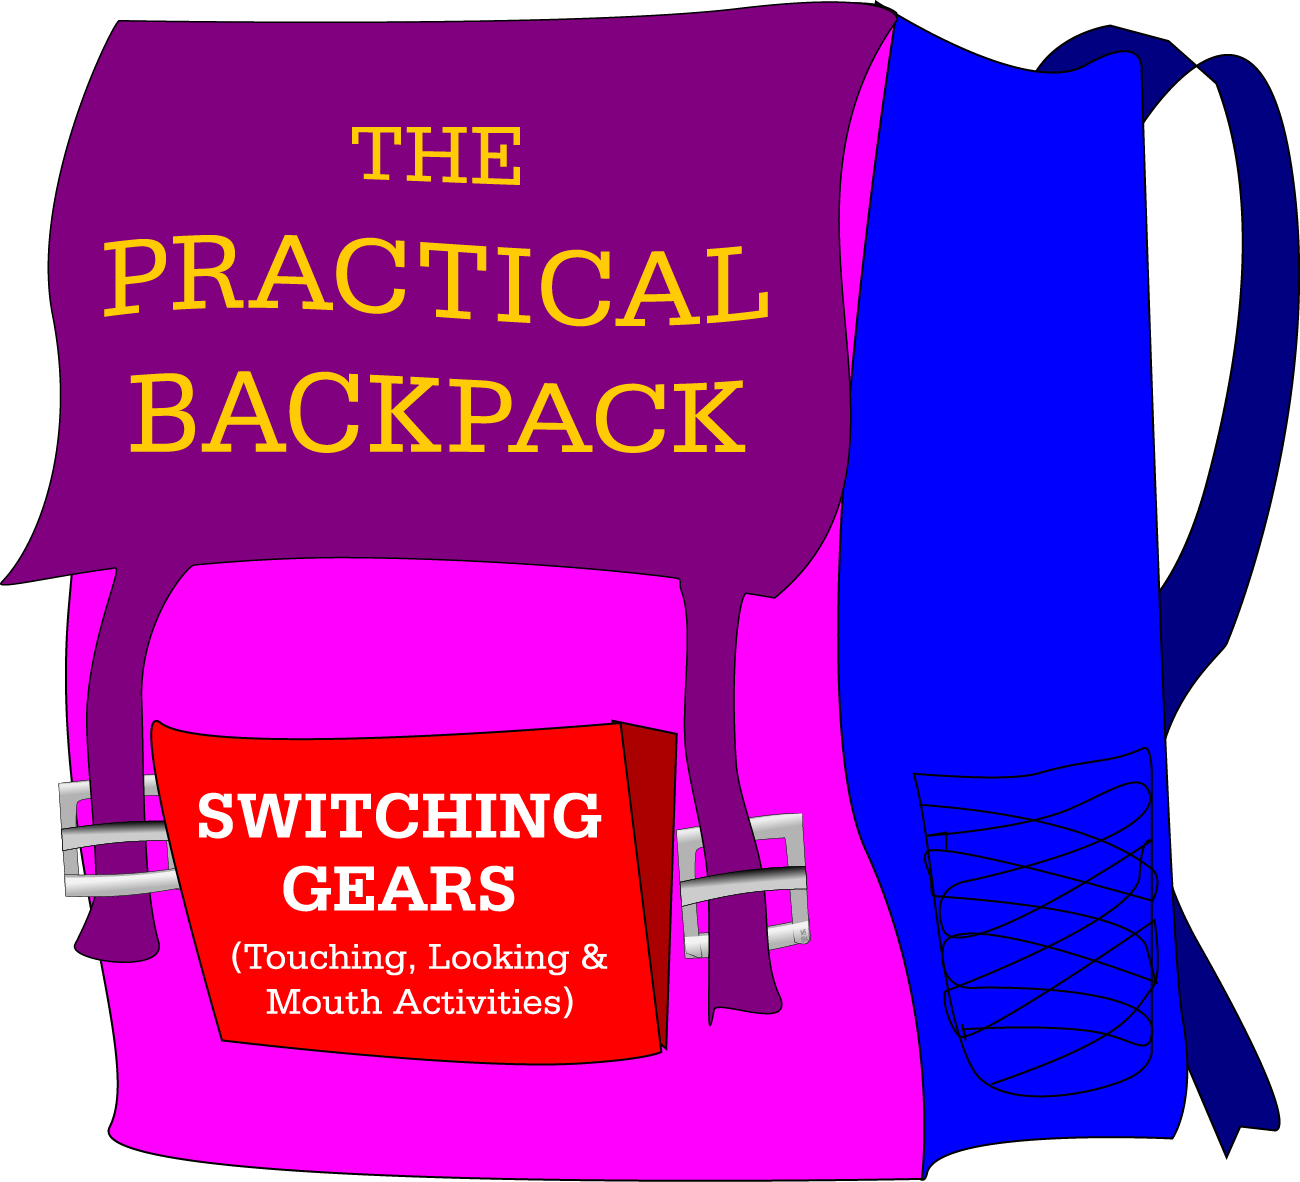 THE PRACTICAL BACKPACK (Part-2)